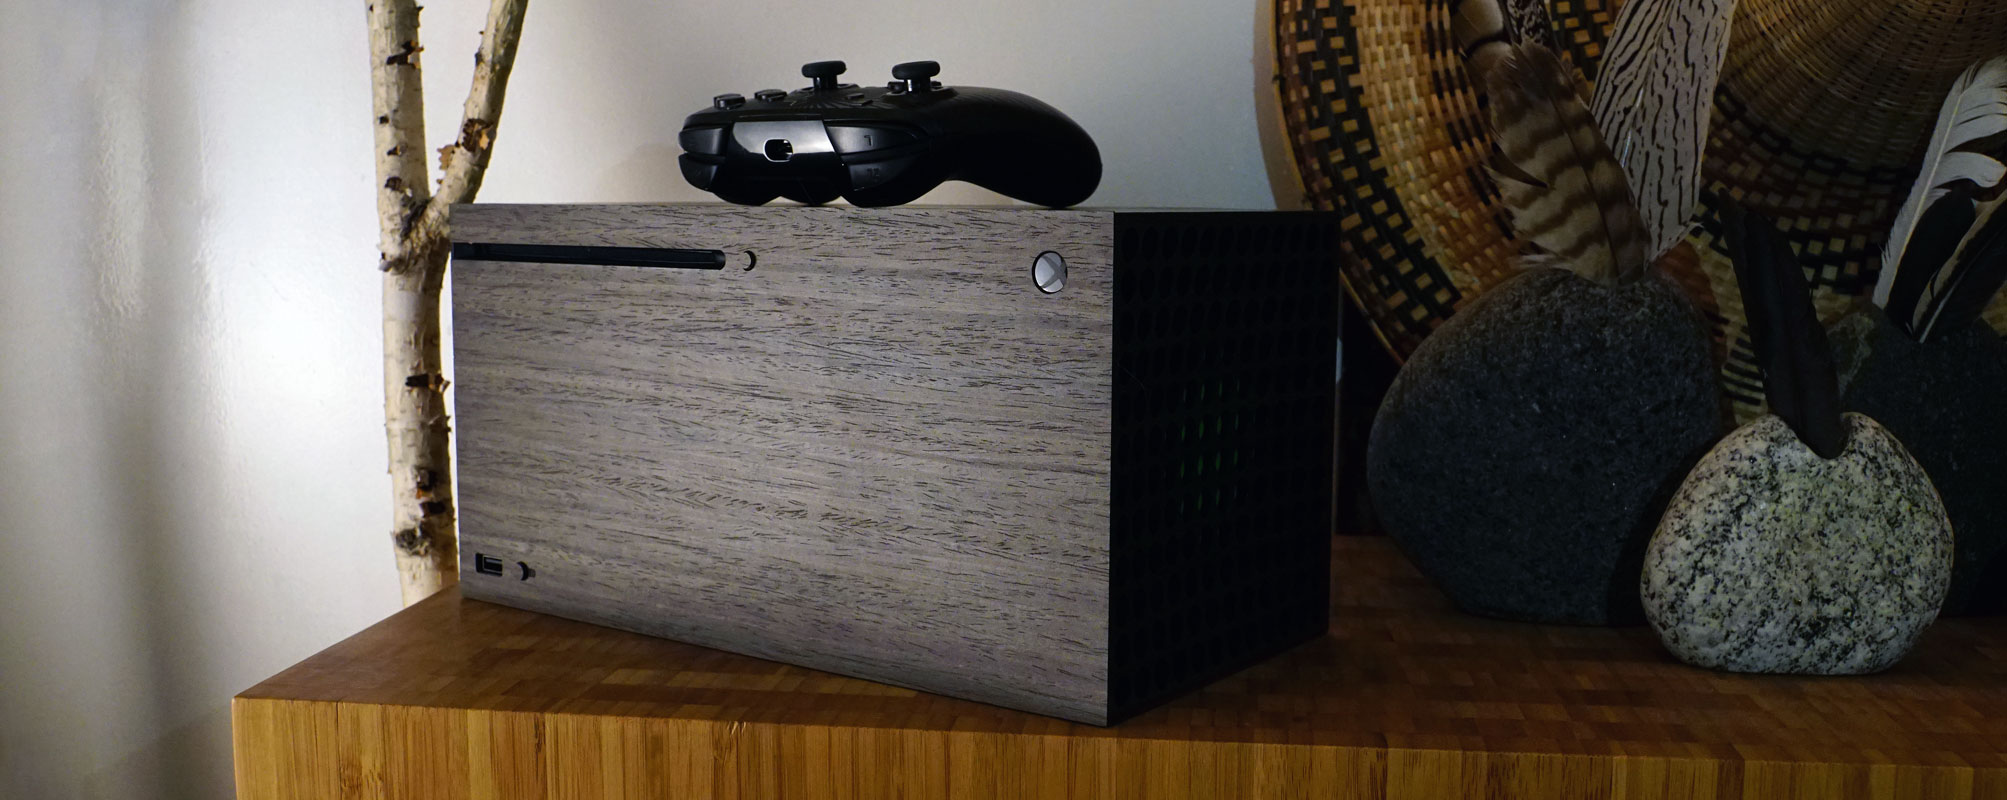 xbox-x-ebony-with-feathers-banner-for-web.jpg